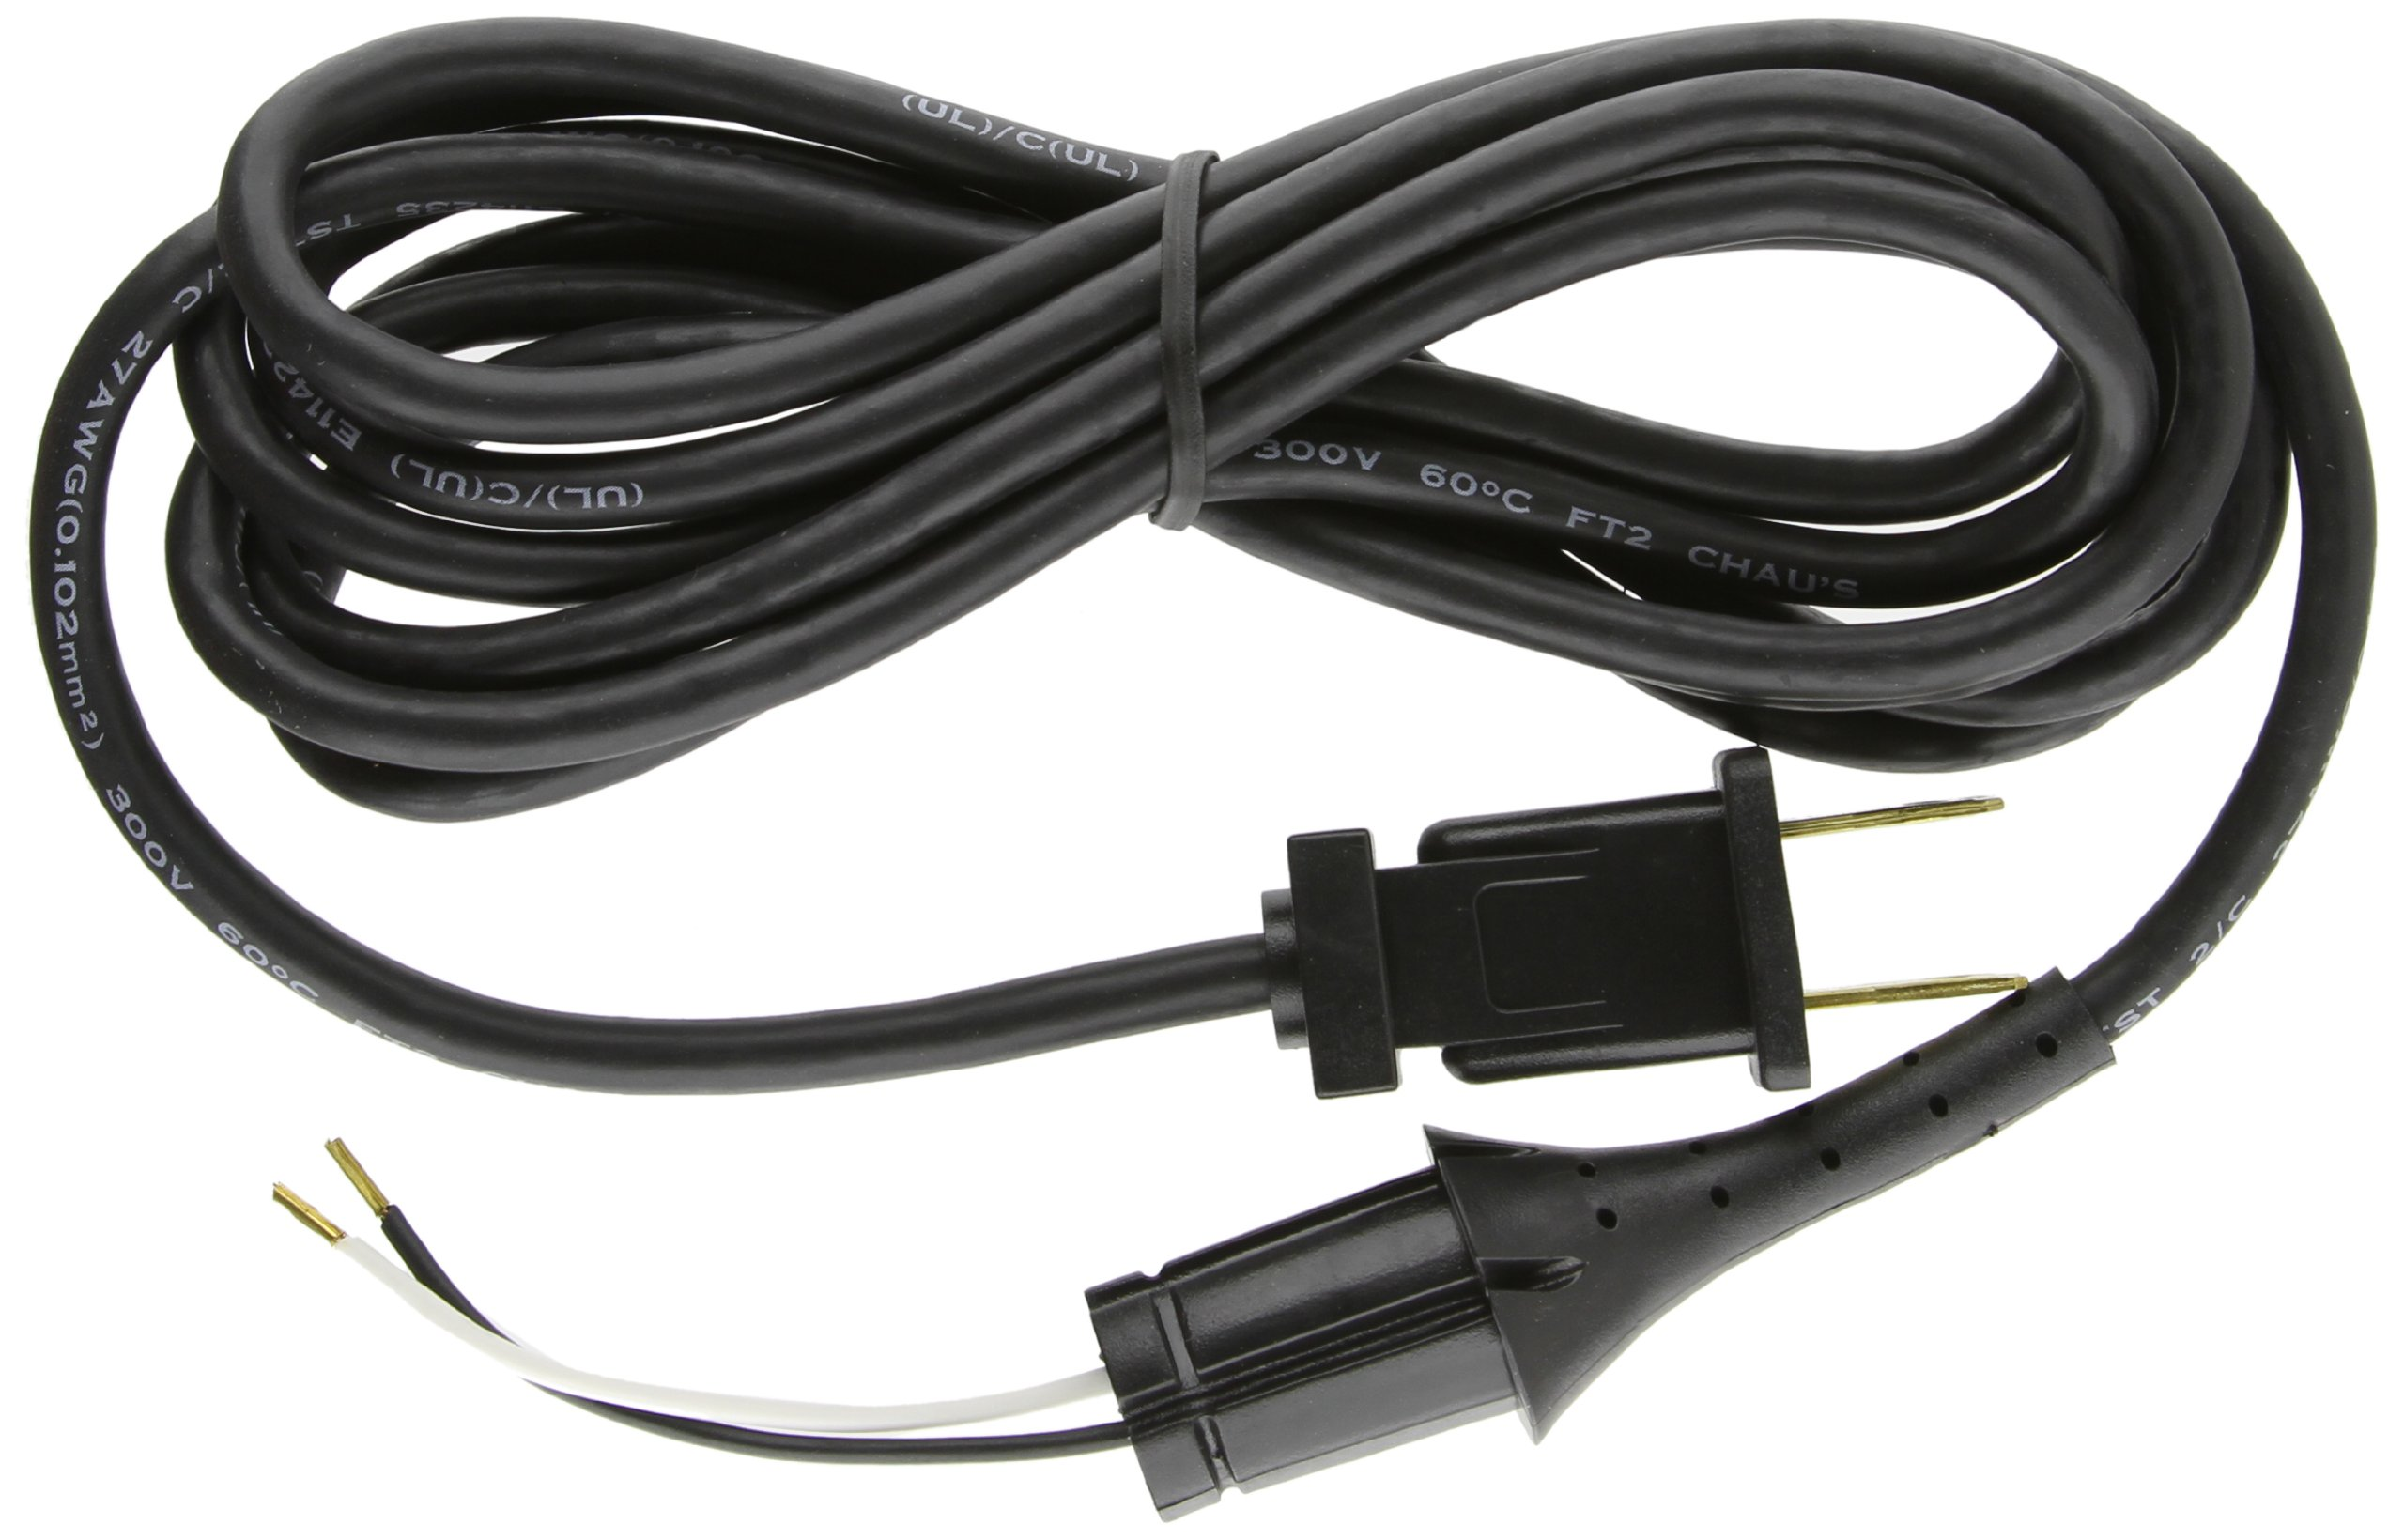 Amazon.com: Andis 26049 Power Cord for Styliner Trimmer: Beauty